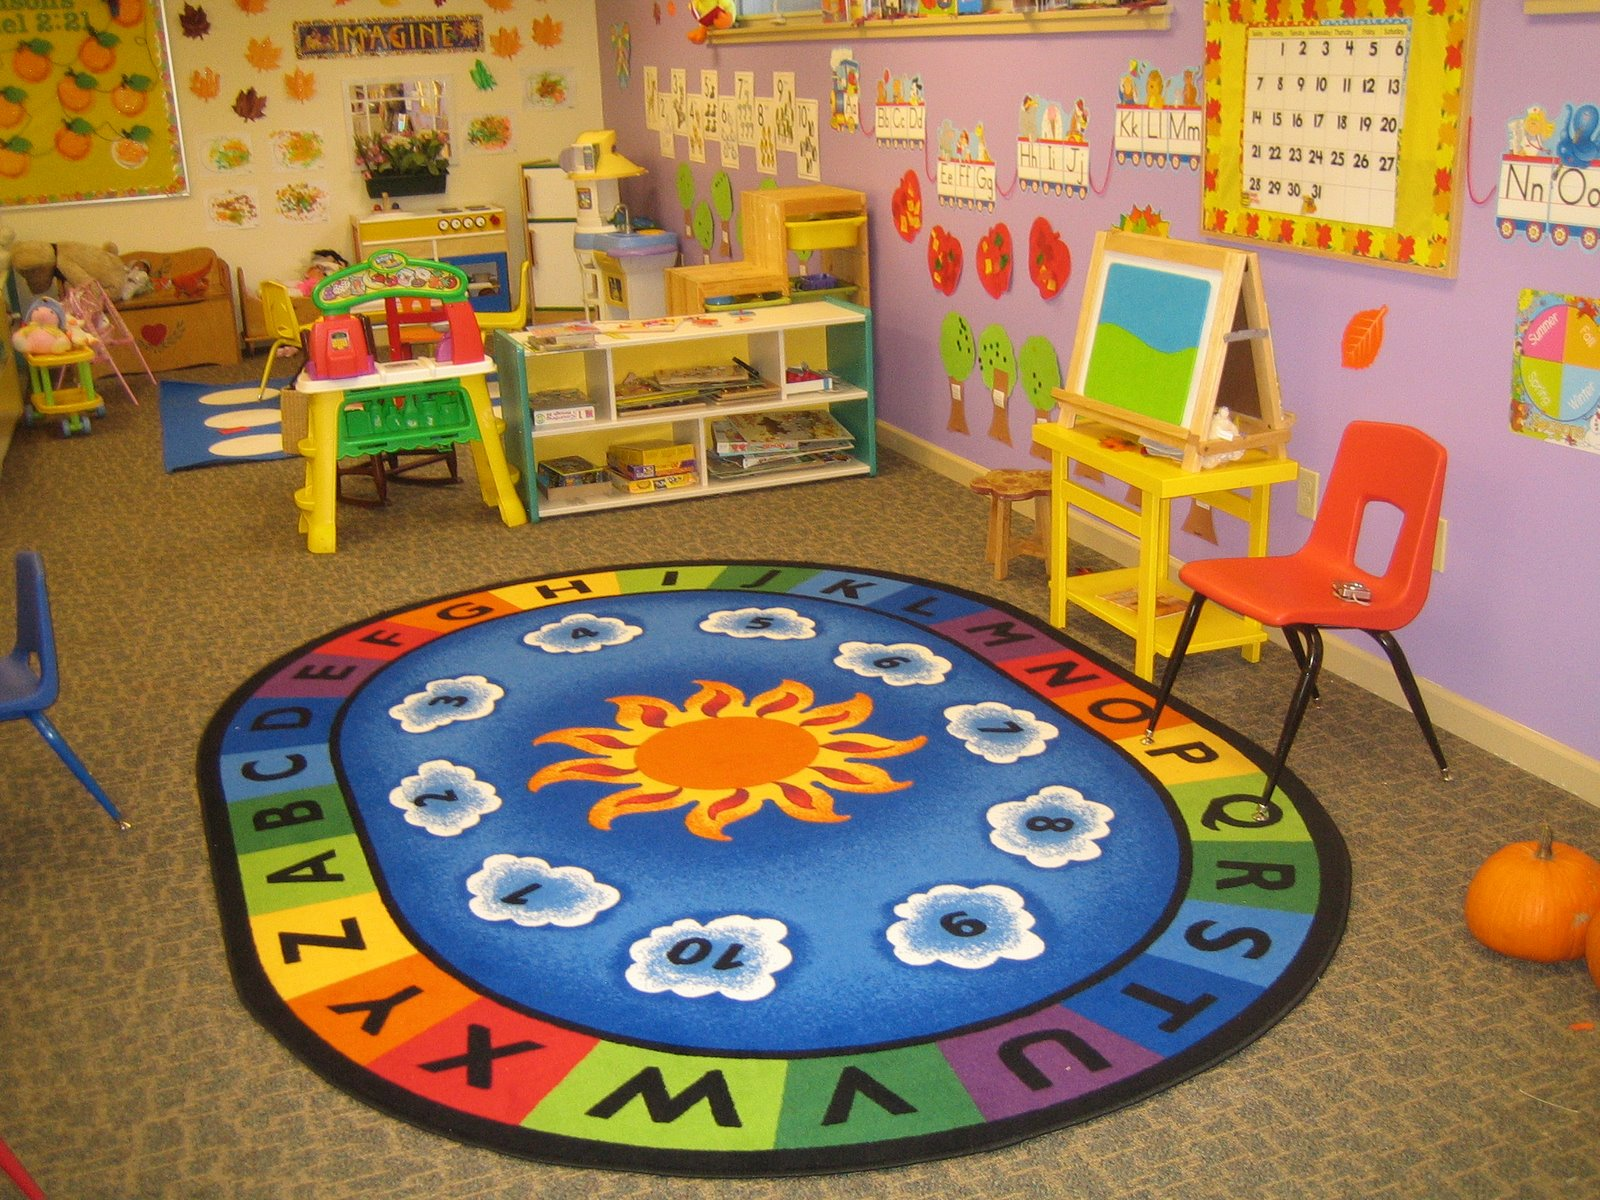 12 Tips for a Happier Home, Adapted from Nursery School.